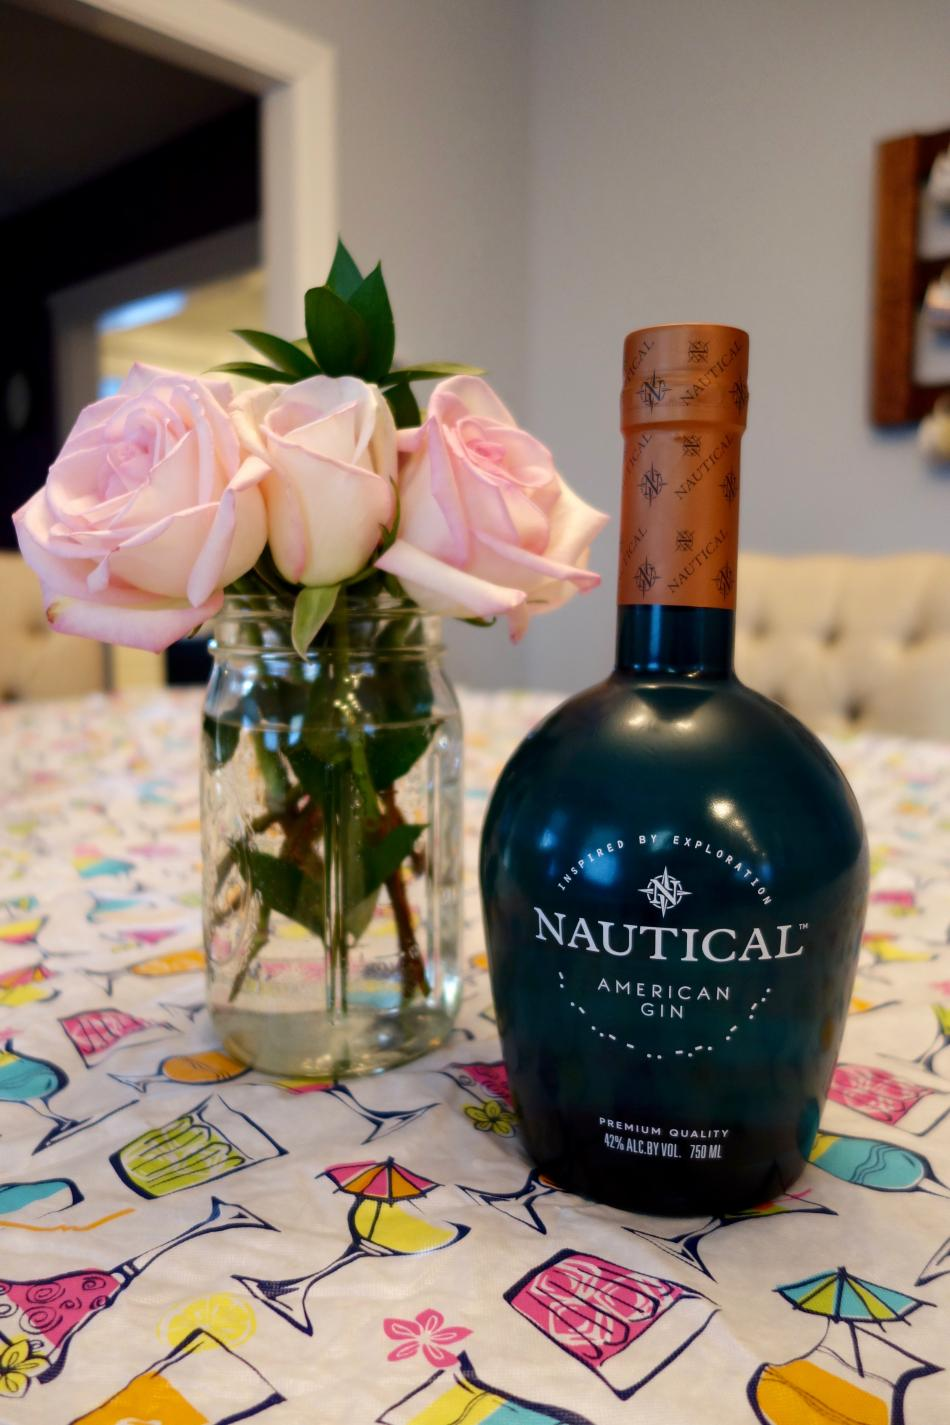 Nautical Gin